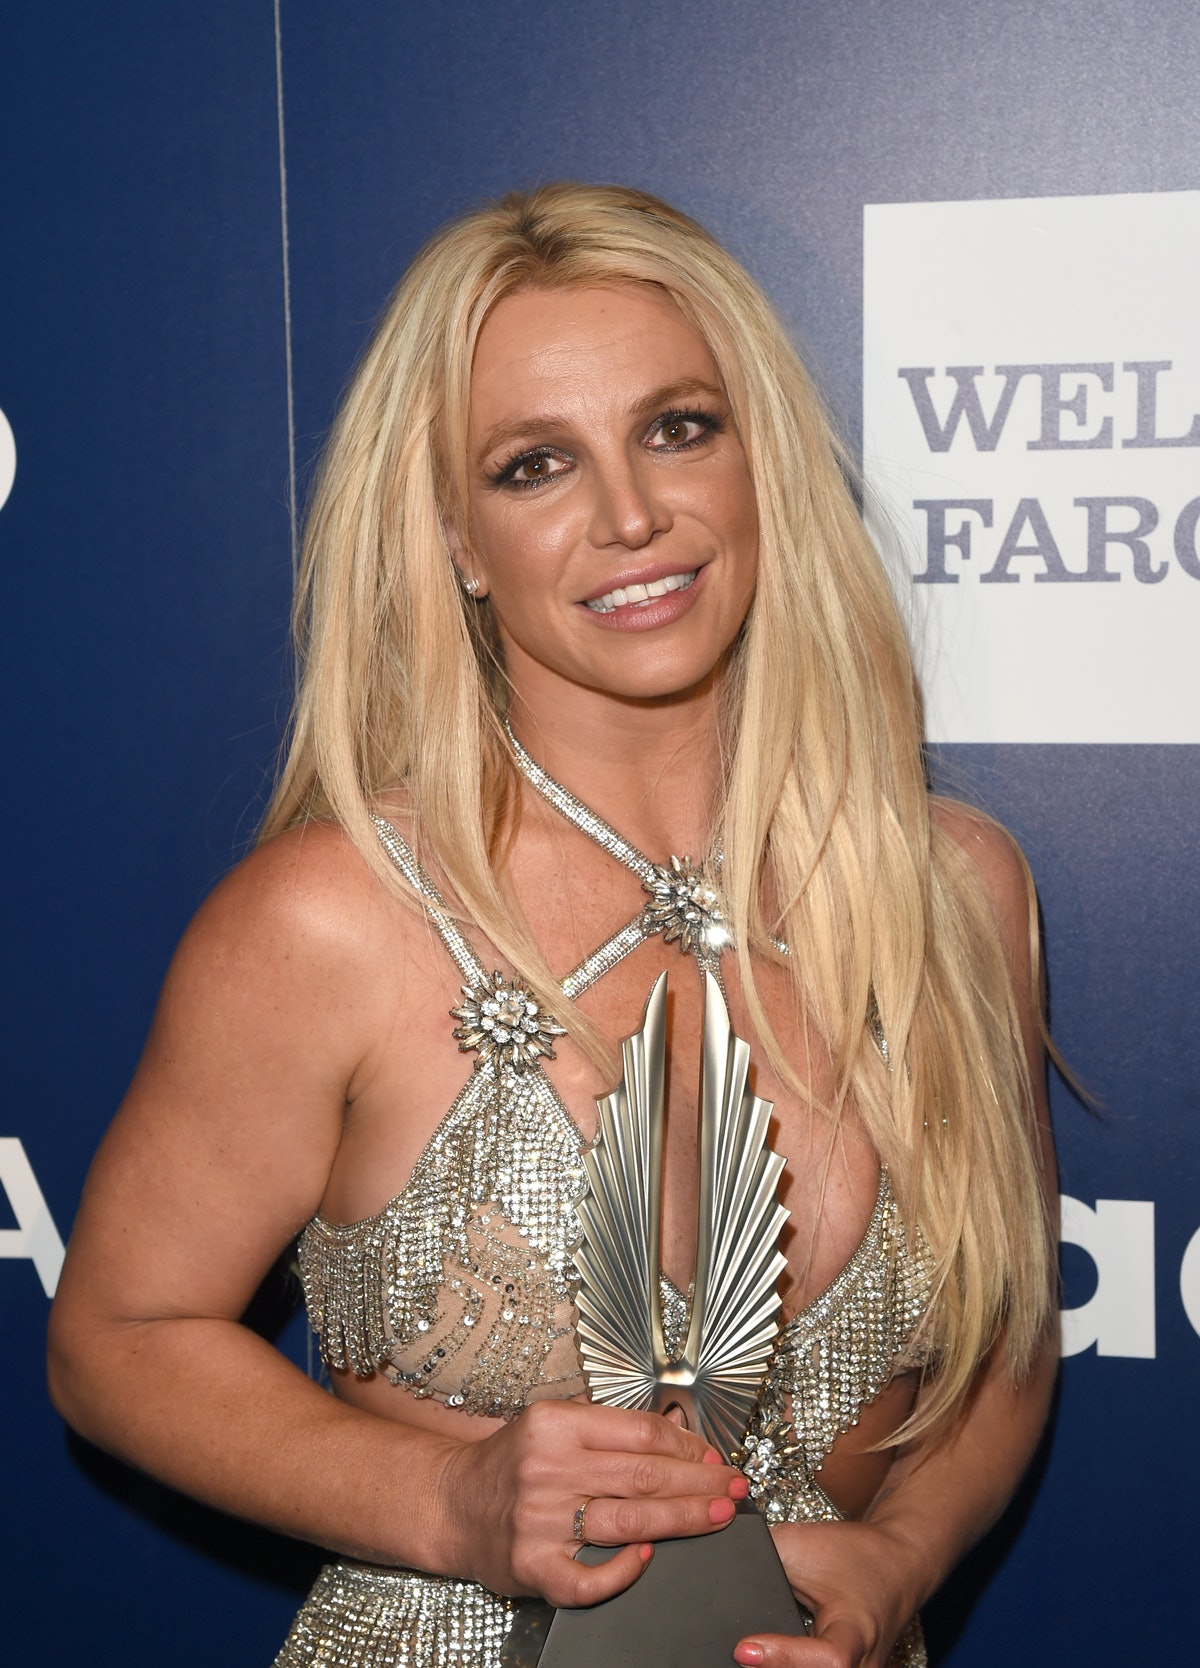 BEVERLY HILLS, CA - APRIL 12:  Vanguard Award recipient Britney Spears poses backstage at the 29th Annual GLAAD Media Awards at The Beverly Hilton Hotel on April 12, 2018 in Beverly Hills, California.  (Photo by J. Merritt/Getty Images for GLAAD)